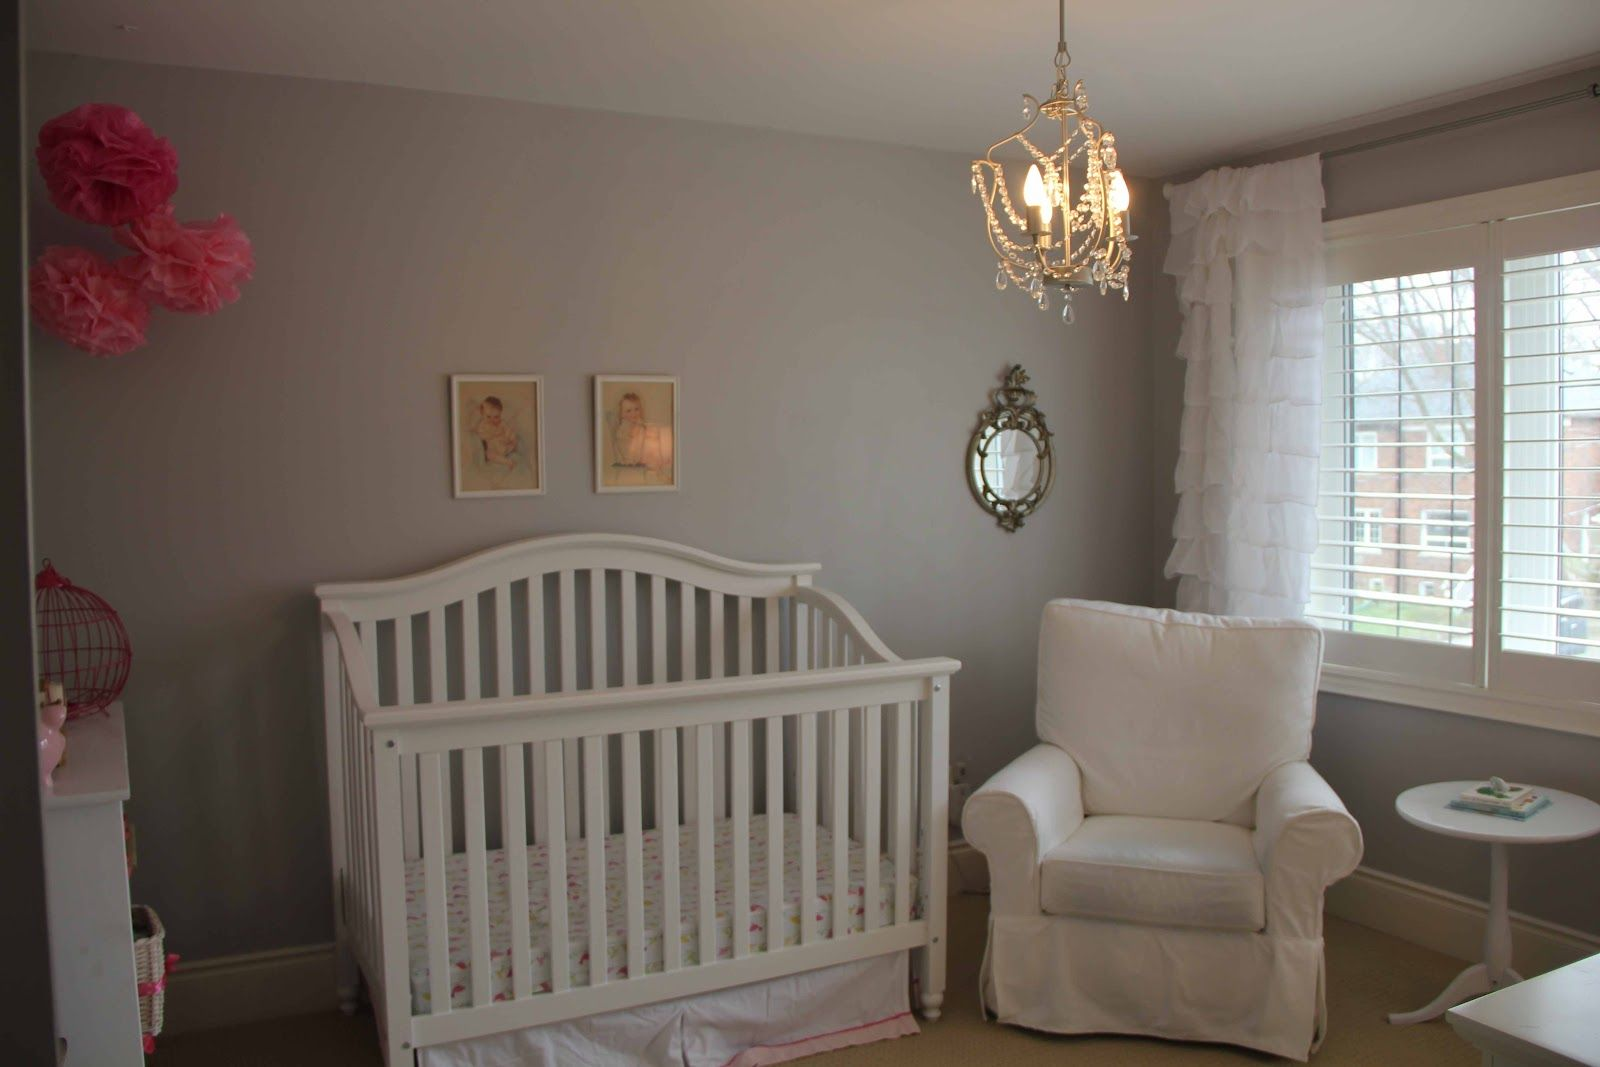 Sherwin Williams Zircon Unbeige My Heart Nursery Reveal